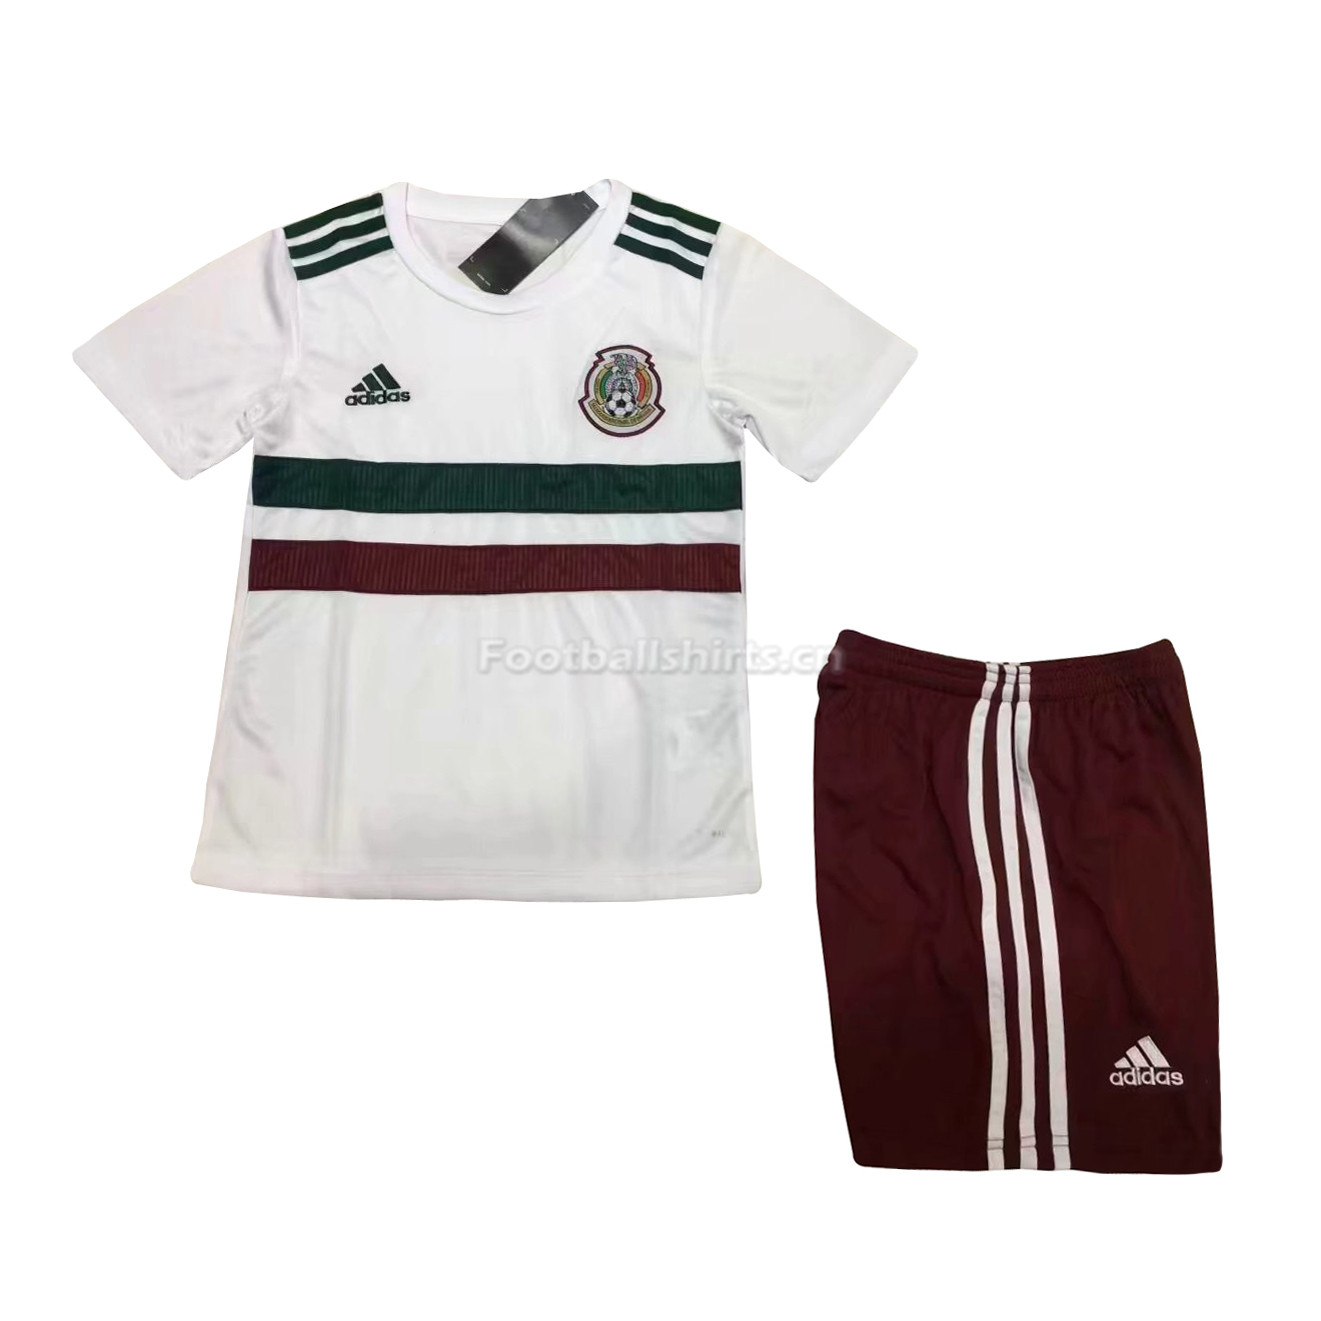 Kids Mexico 2018 FIFA World Cup Away Soccer Kit Shirt + Shorts